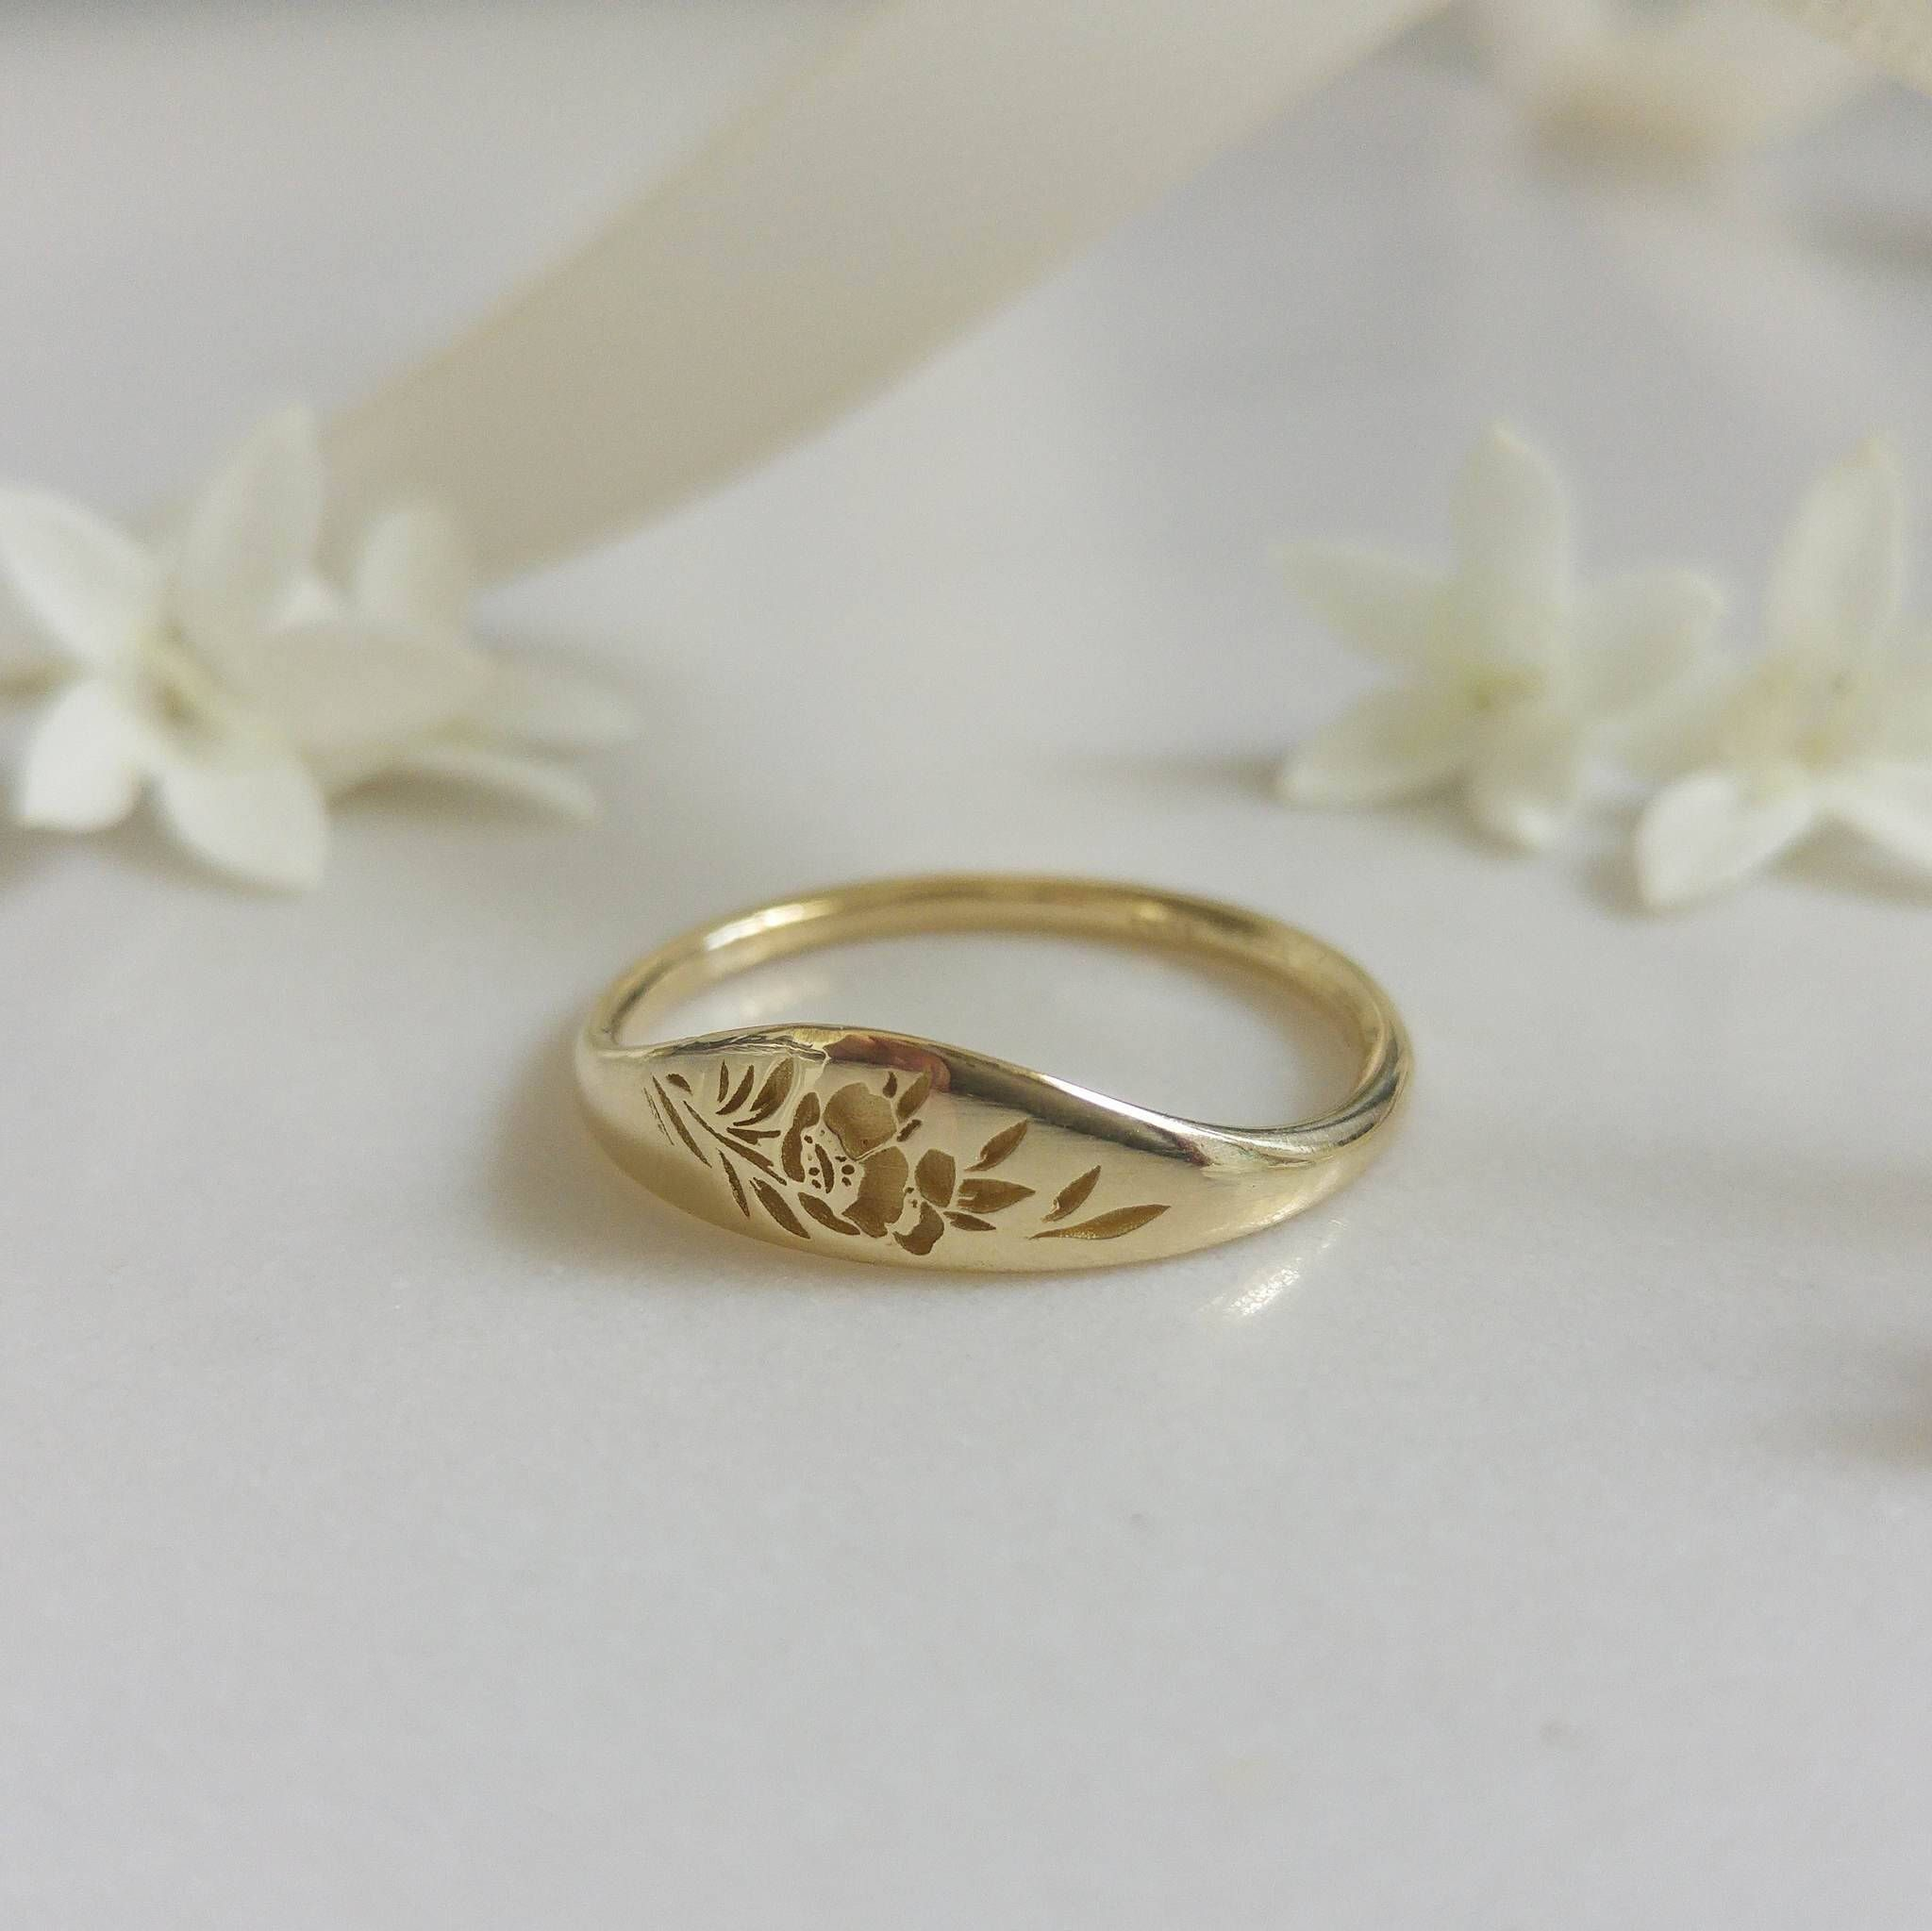 Photo of Gold flower signet ring, vintage style floral crown ring for women, Unique Gold wedding ring, 14k gold wedding band, flower wedding band